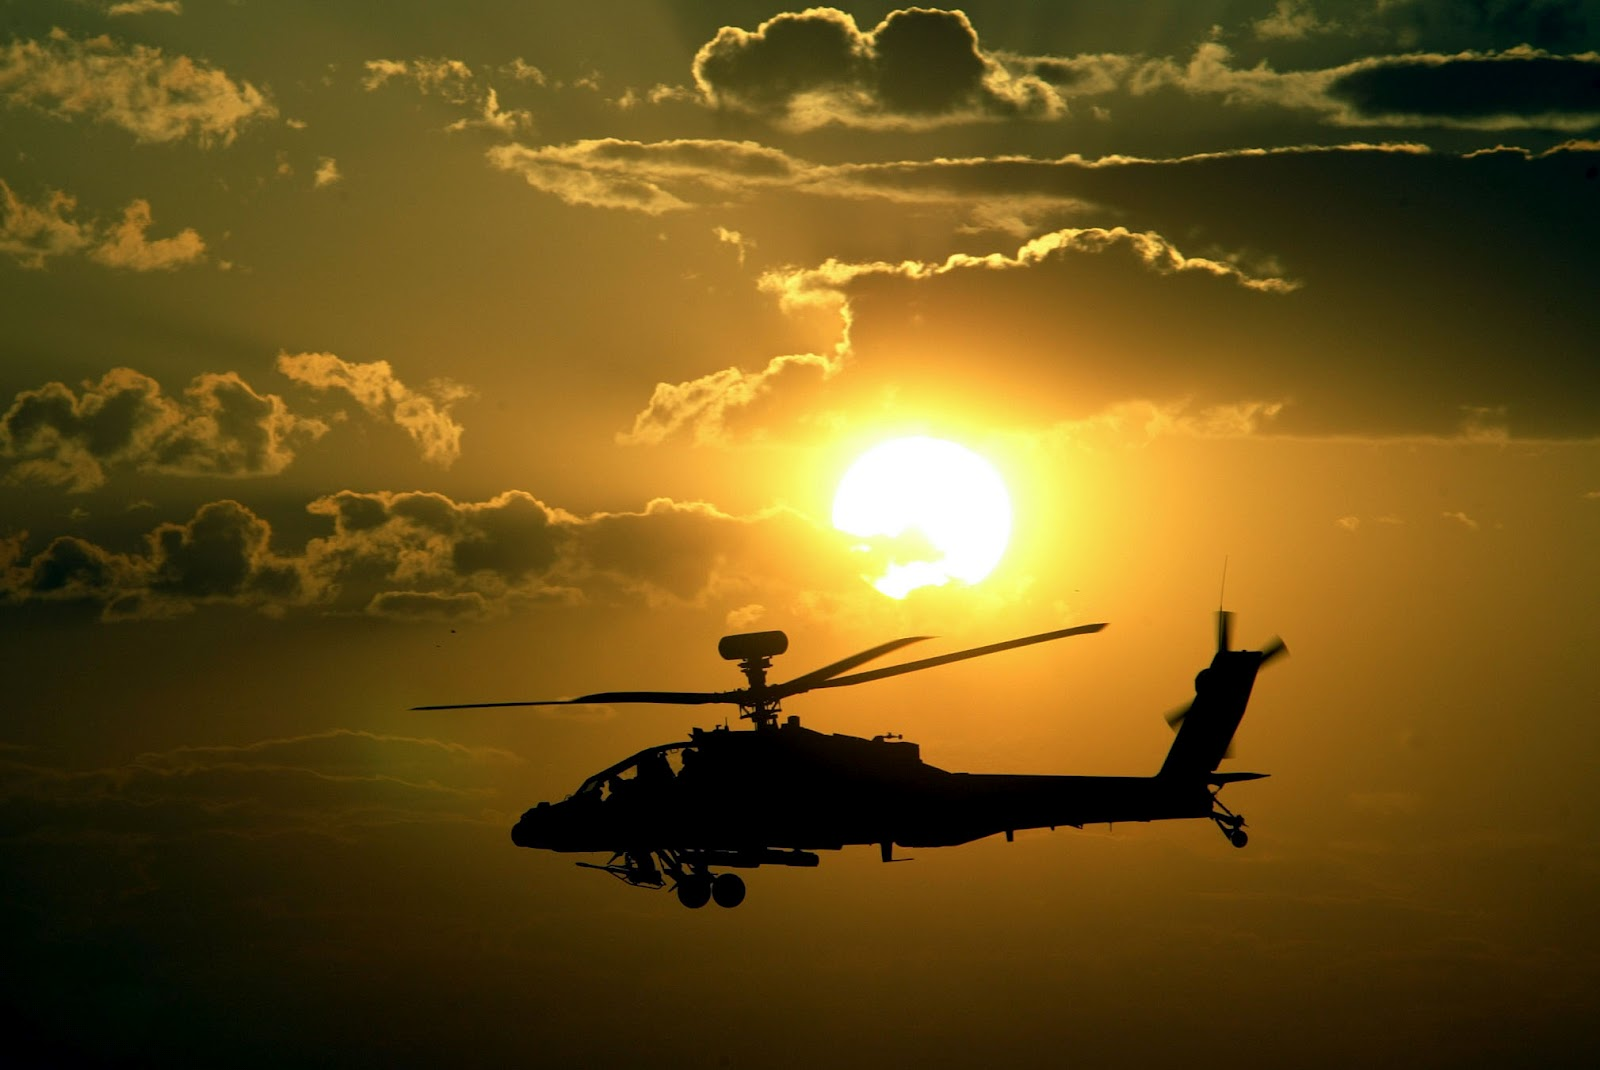 Top 41 most incredible and amazing helicopter wallpapers in hd for Amazing wallpapers for mobile